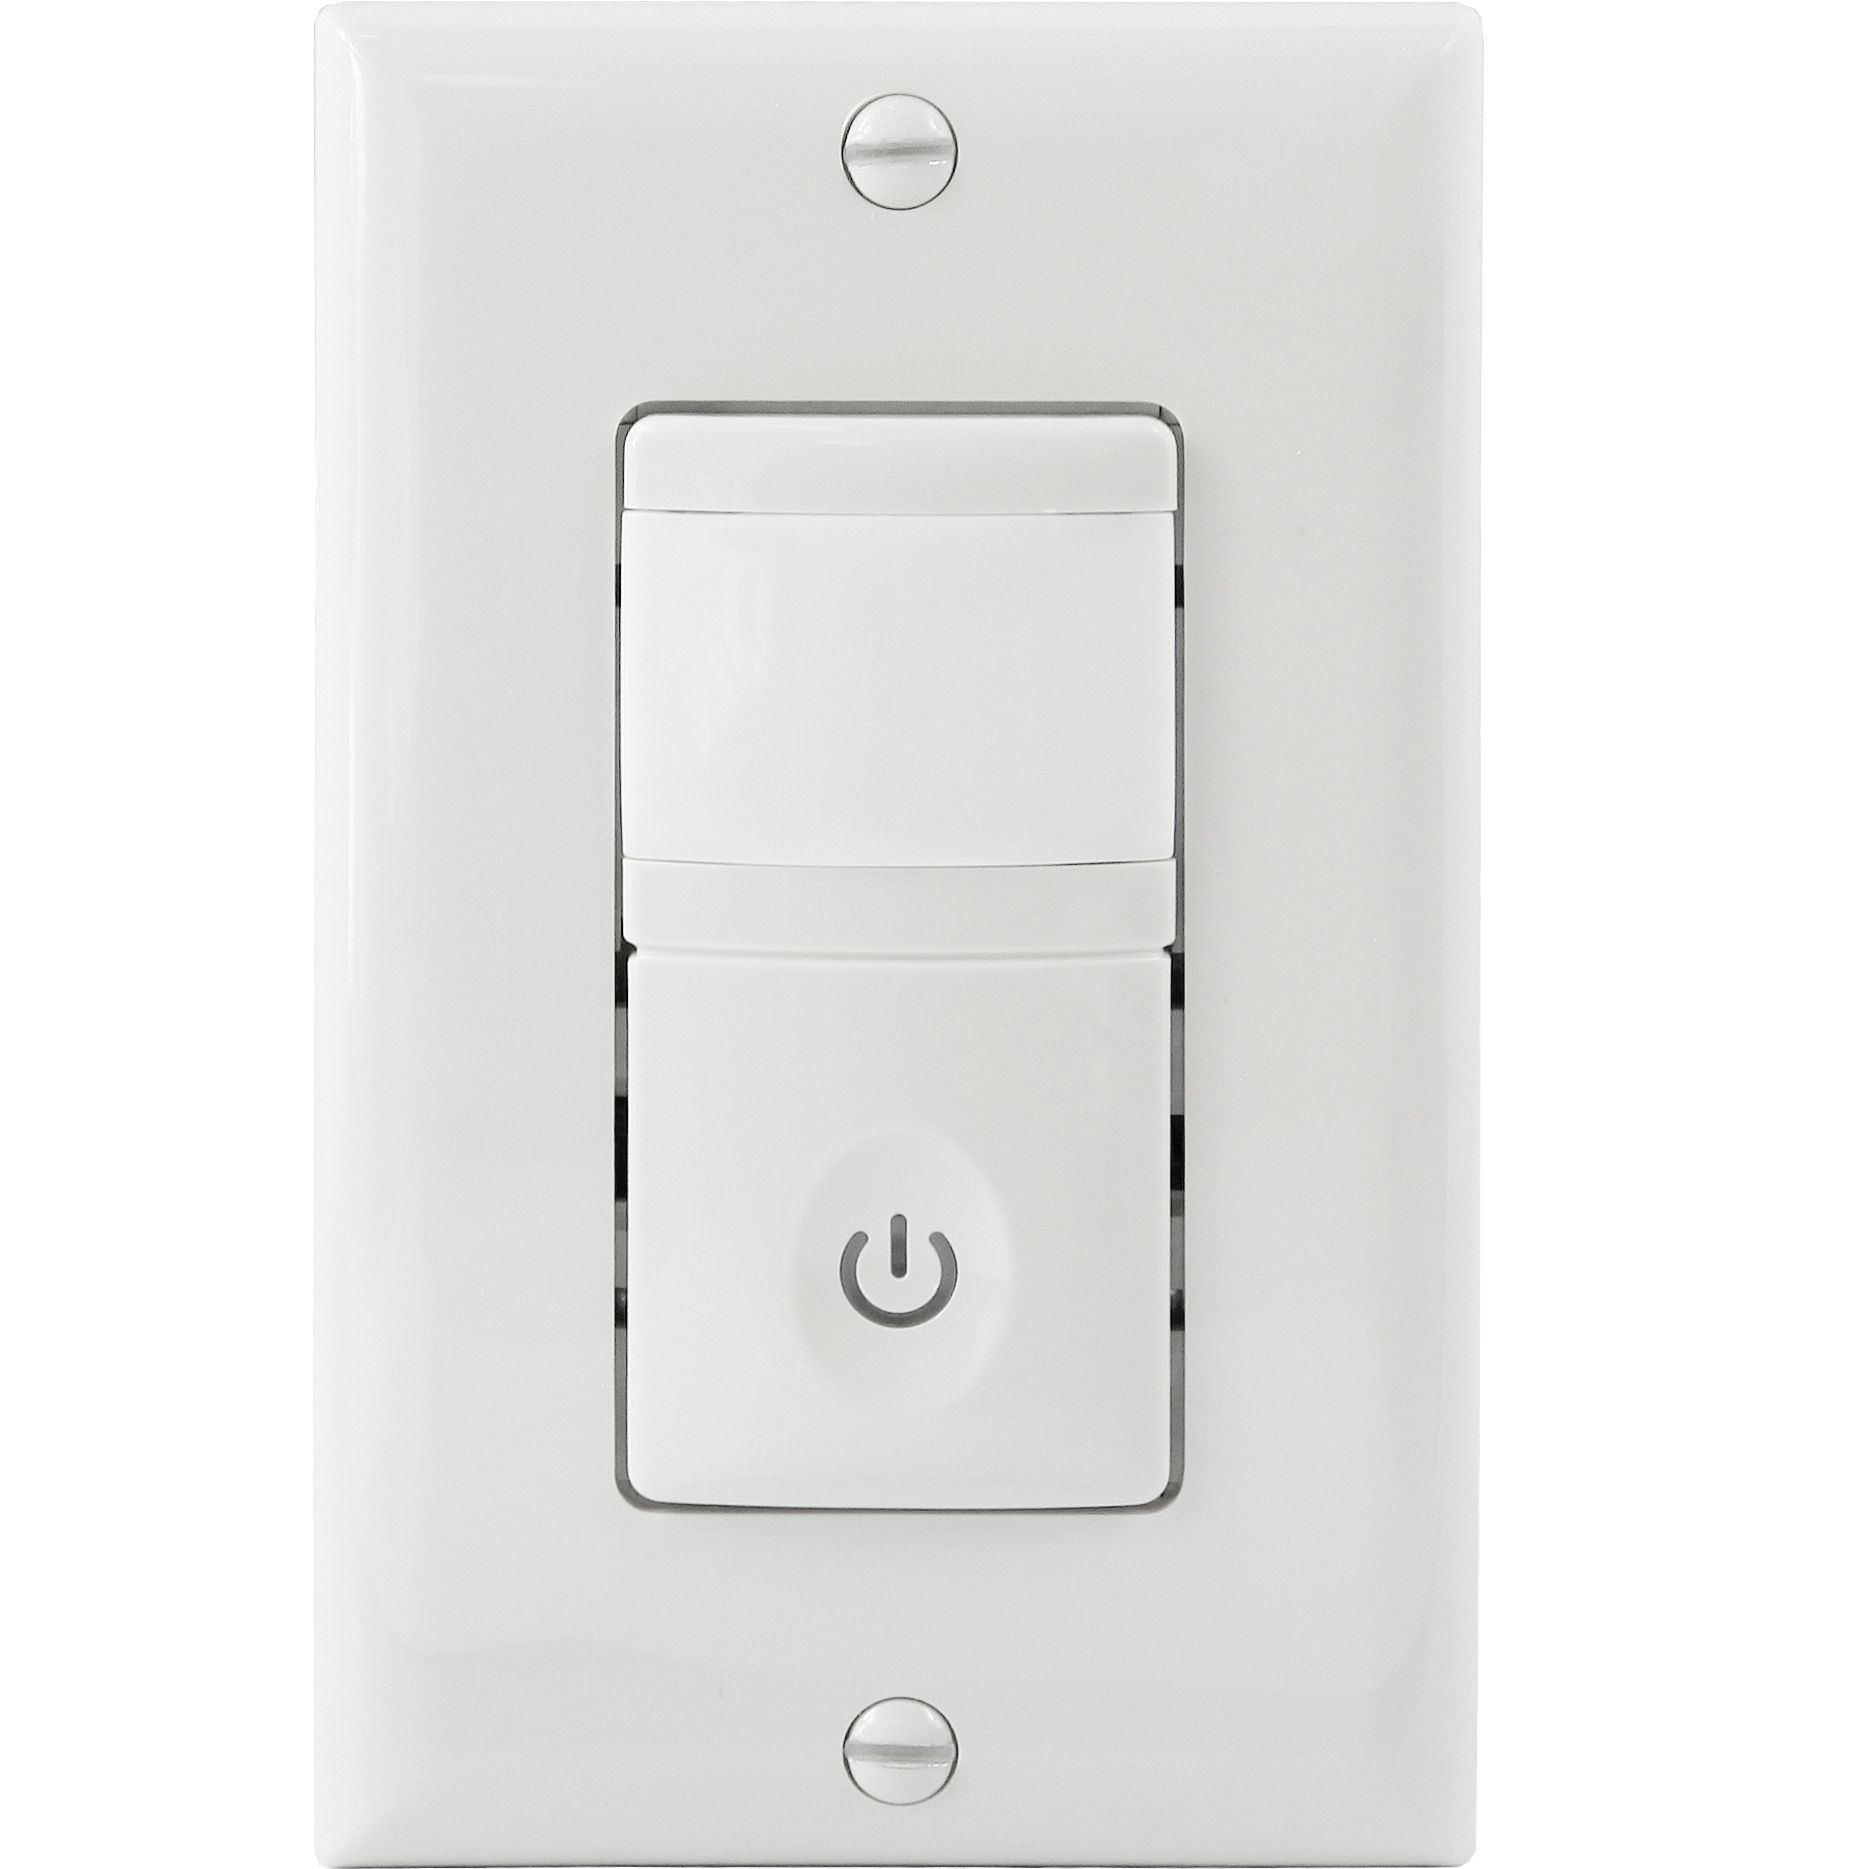 A high sensitivity and dense coverage for exceptional performance. It's defaults to manual-On operation for maximum energy savings